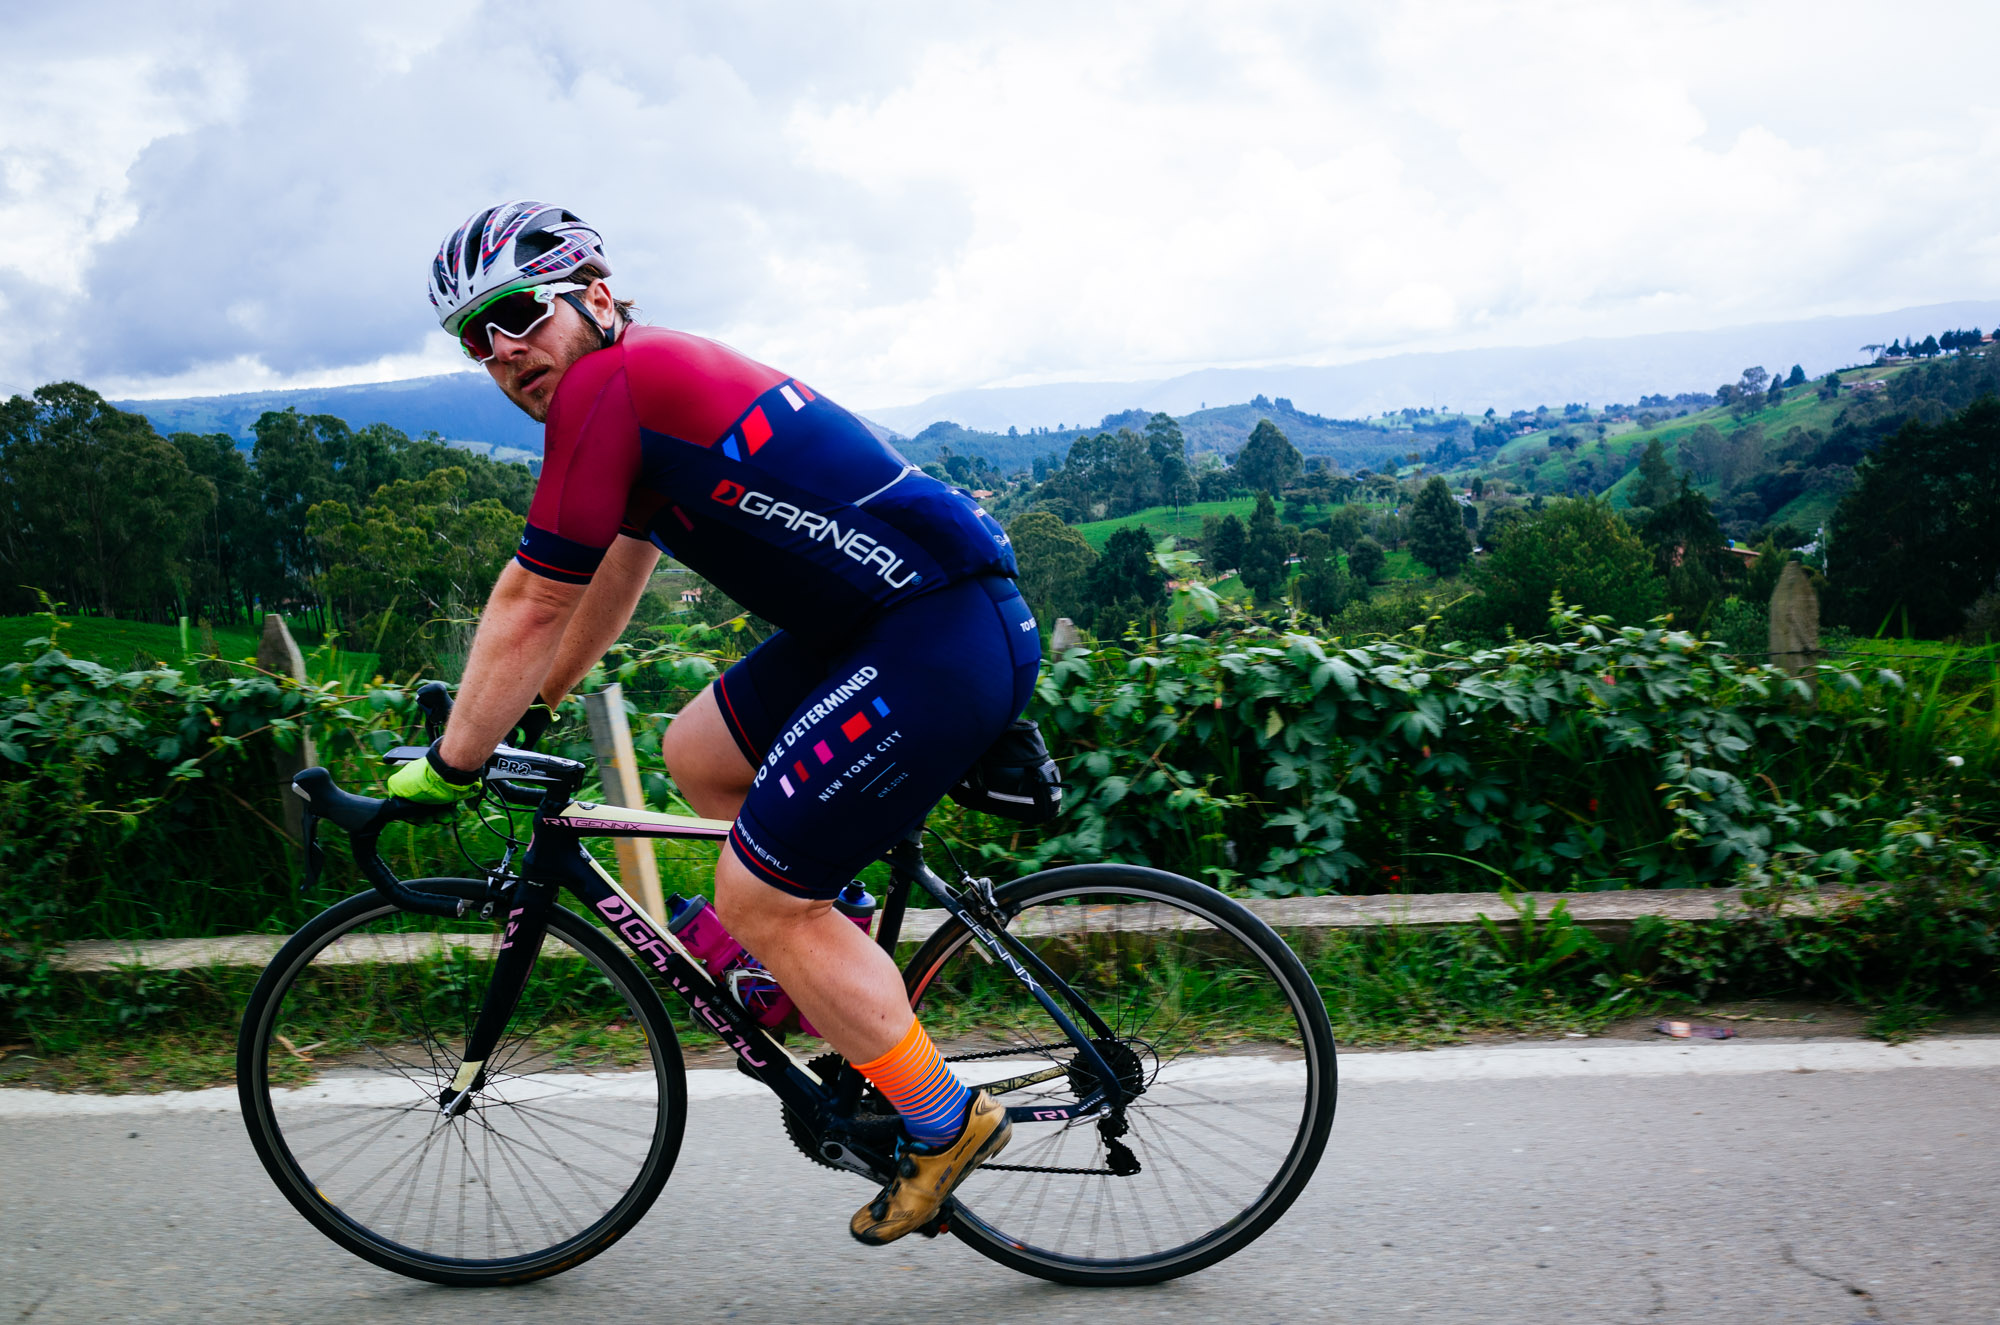 to-be-determined-photo-rhetoric-cycling-in-colombia-1119.jpg